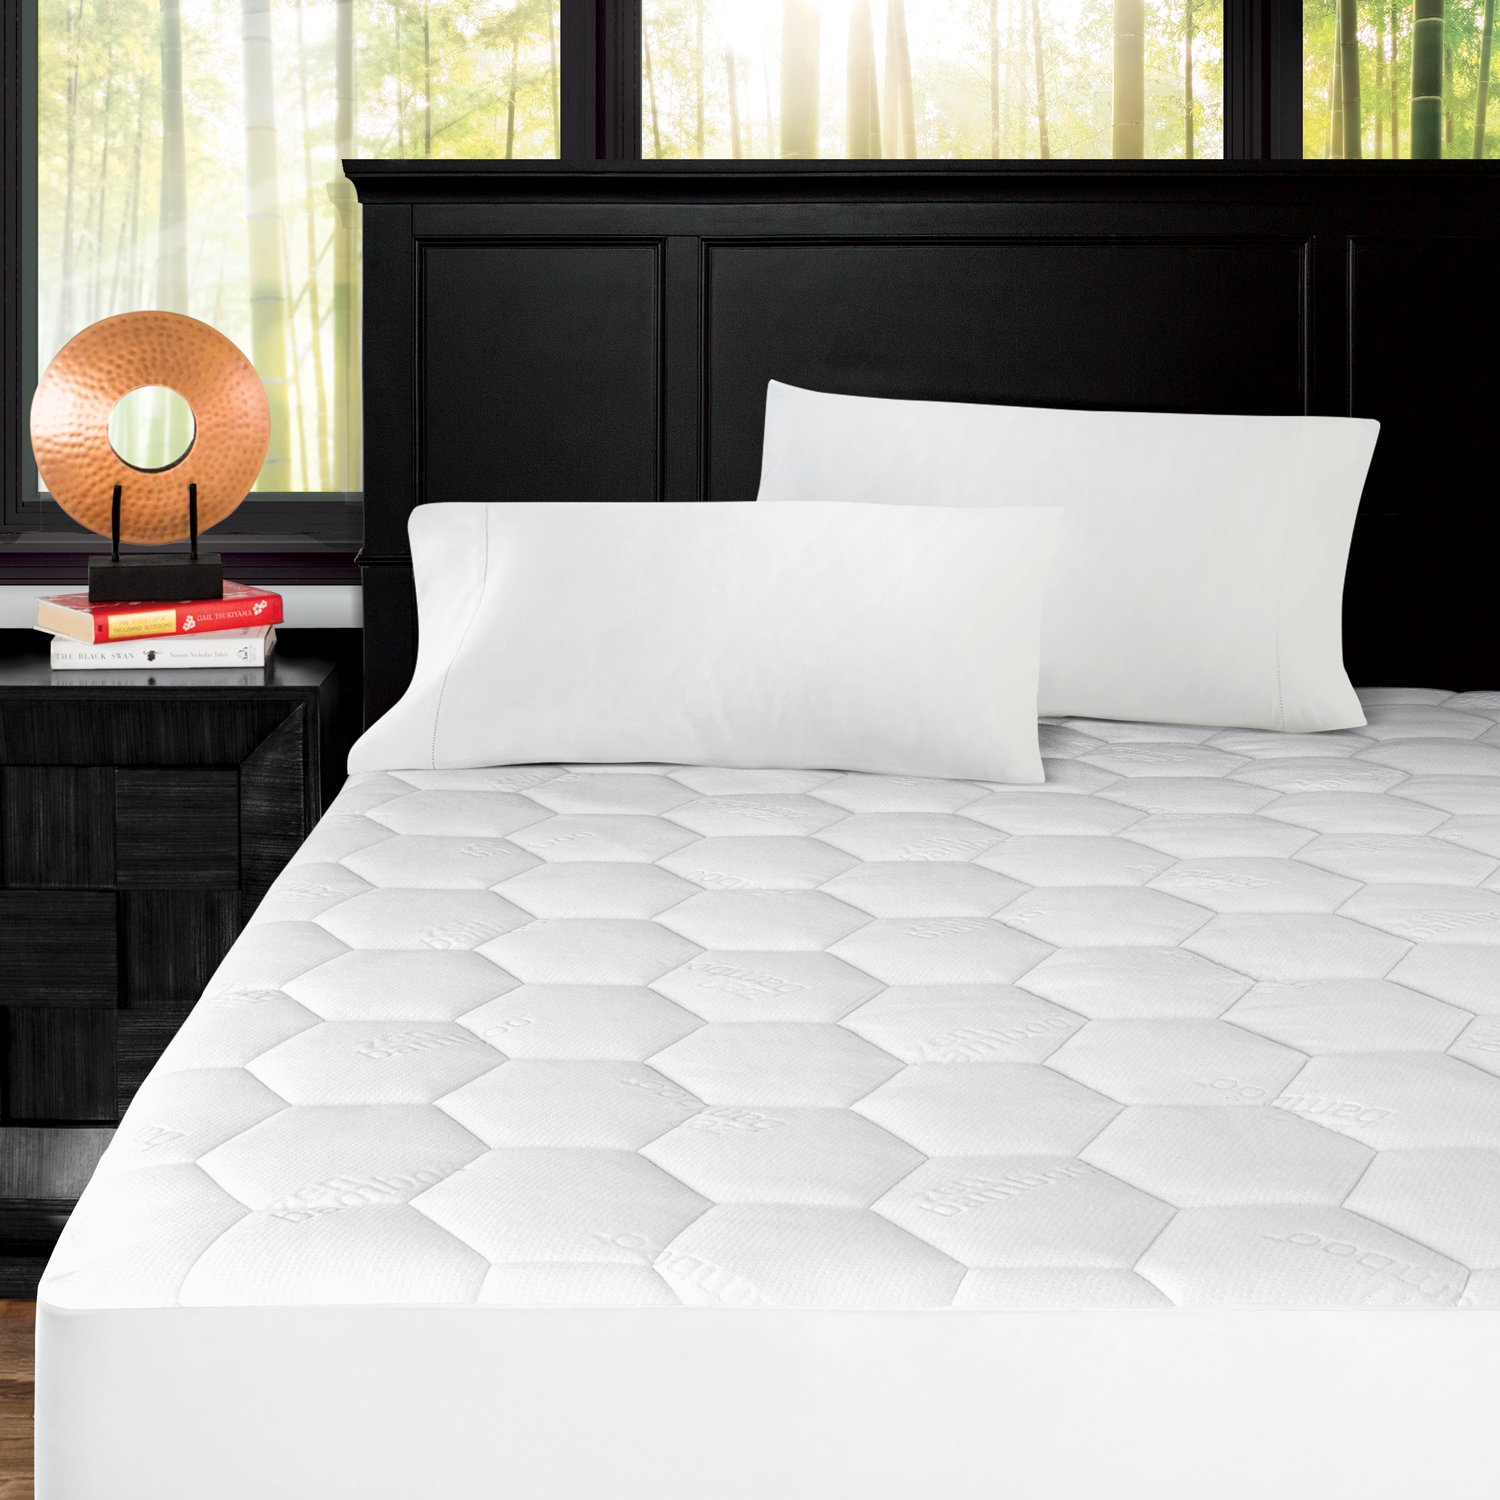 Zen Bamboo Ultra Soft Fitted Bamboo Mattress Pad Review by www.snoremagazine.com